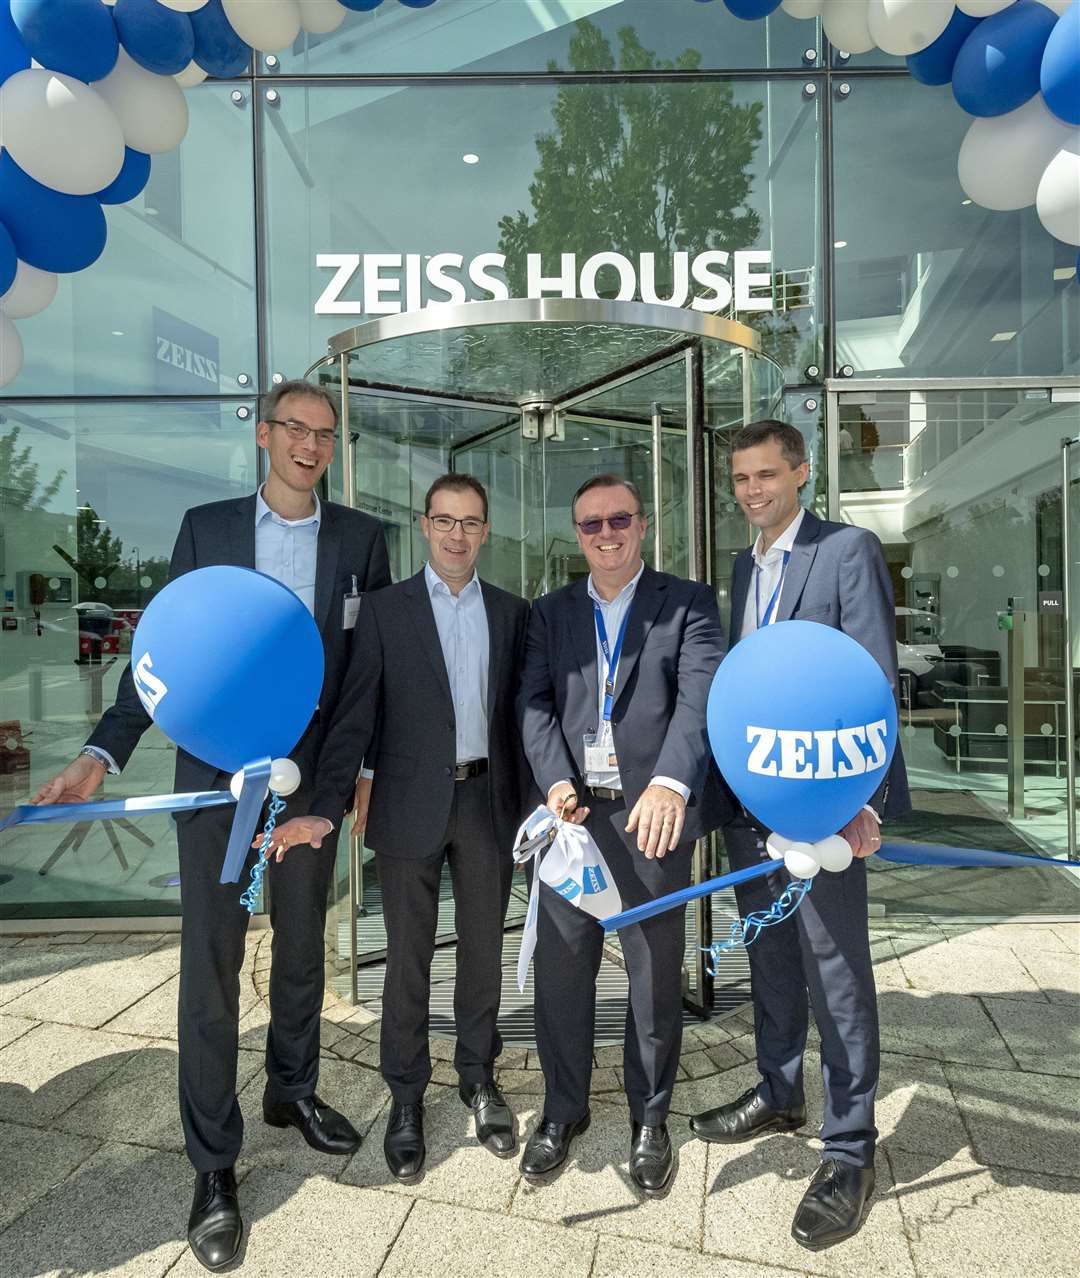 Carl ZEISS official opening of their new offices, ZEISS Hous,e 1030 Cambourne Business Park, Cambourne, from left Dr Markus Weber, Paul Adderley, Dr Jochen Peter and . Picture: Keith Heppell. (15077028)